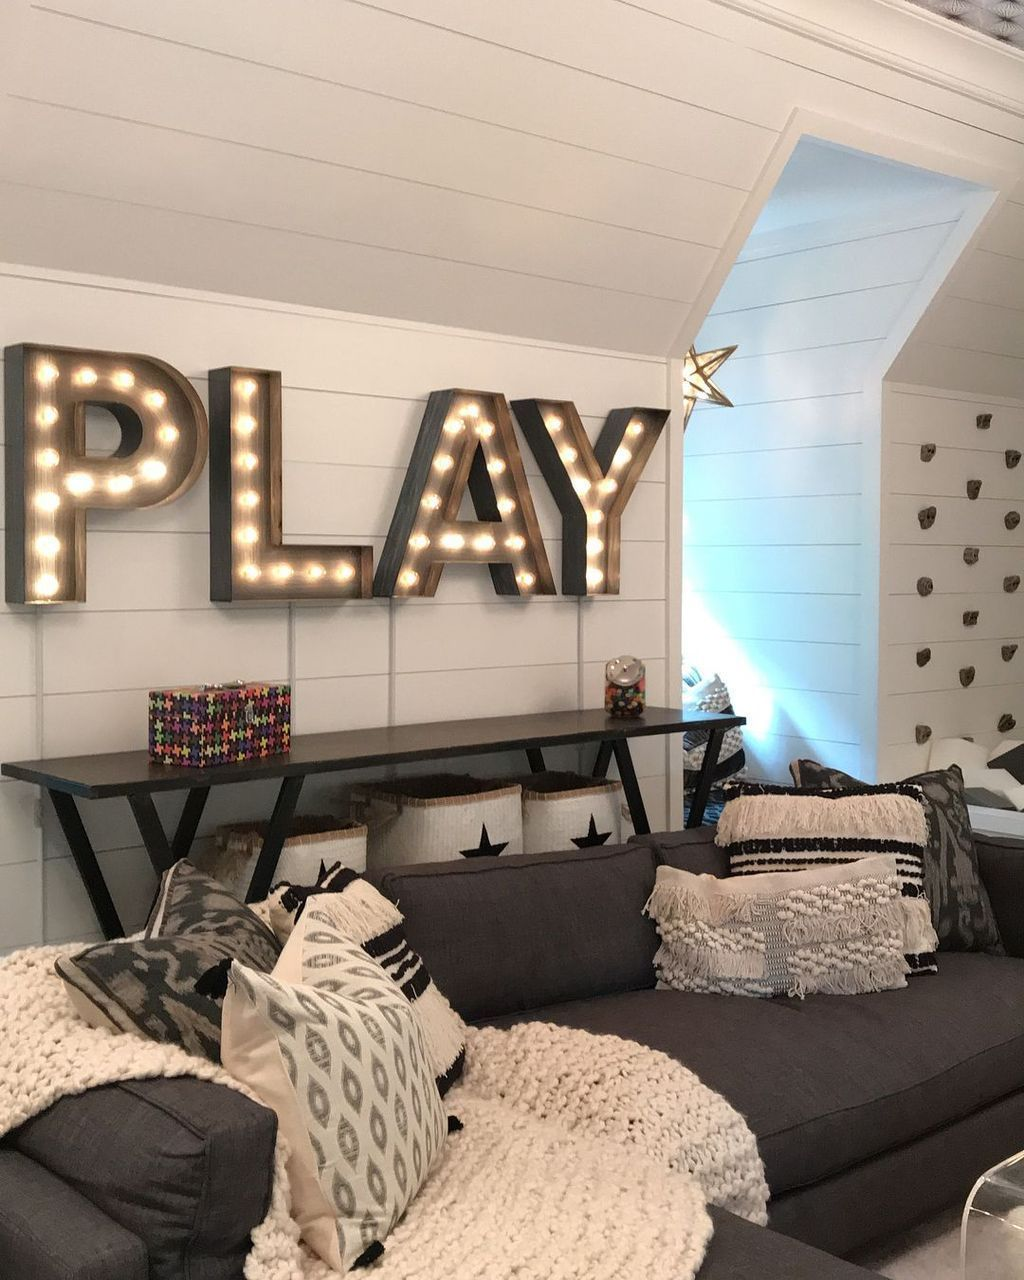 Awesome game room decor ideas 33 toy room decor game